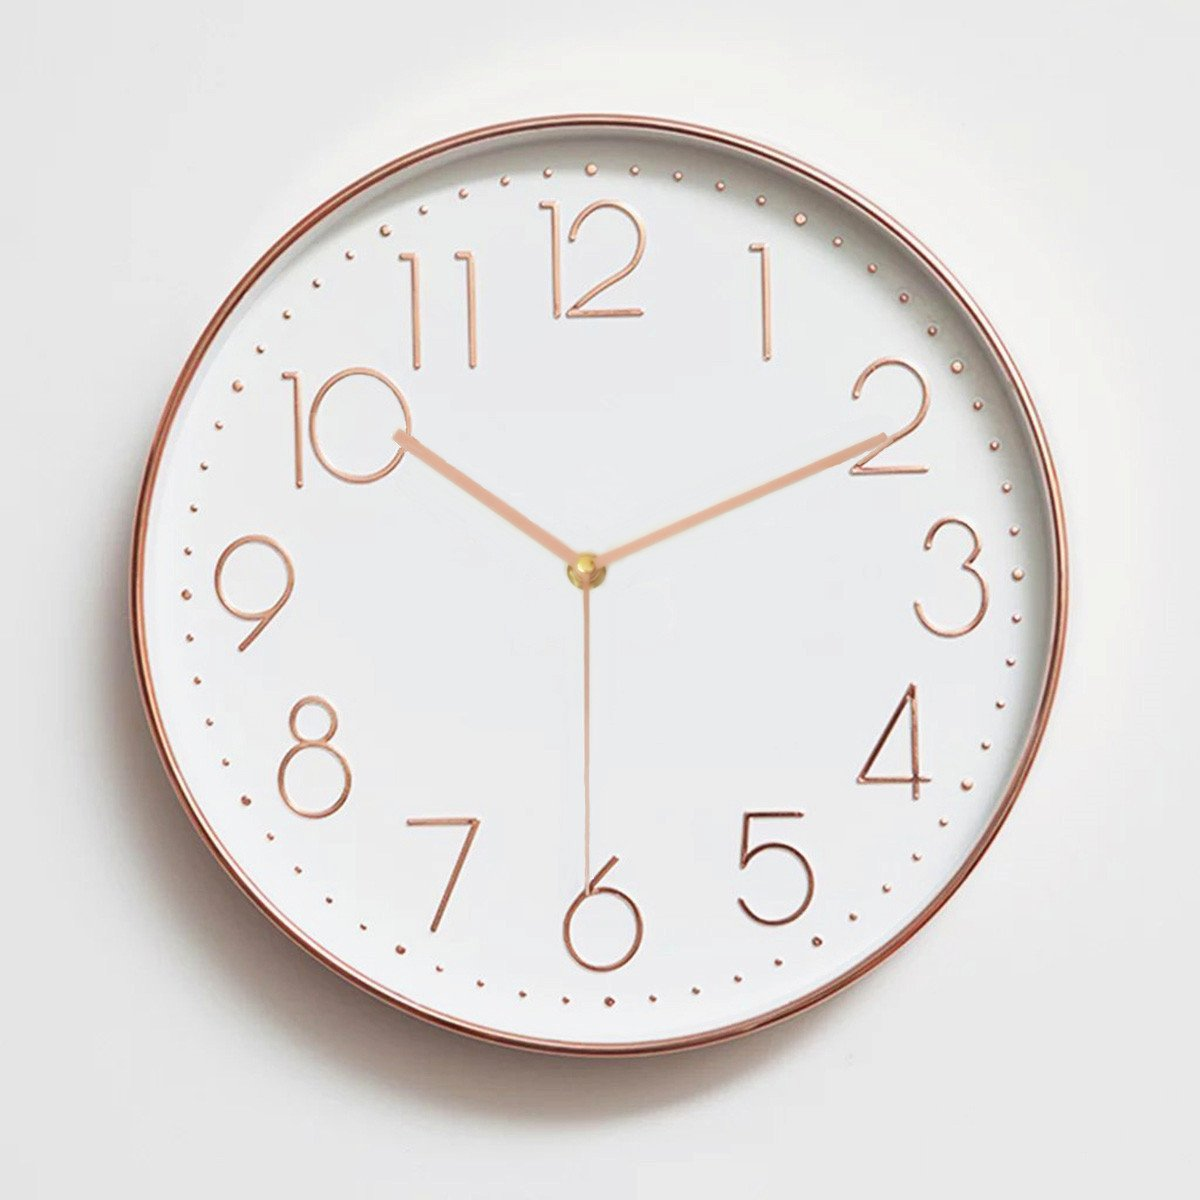 Amazon wall clocks home kitchen foxtop 12 inch silent non ticking large decorative wall clock for kitchen living room bedroom office 30 cm rose gold amipublicfo Image collections